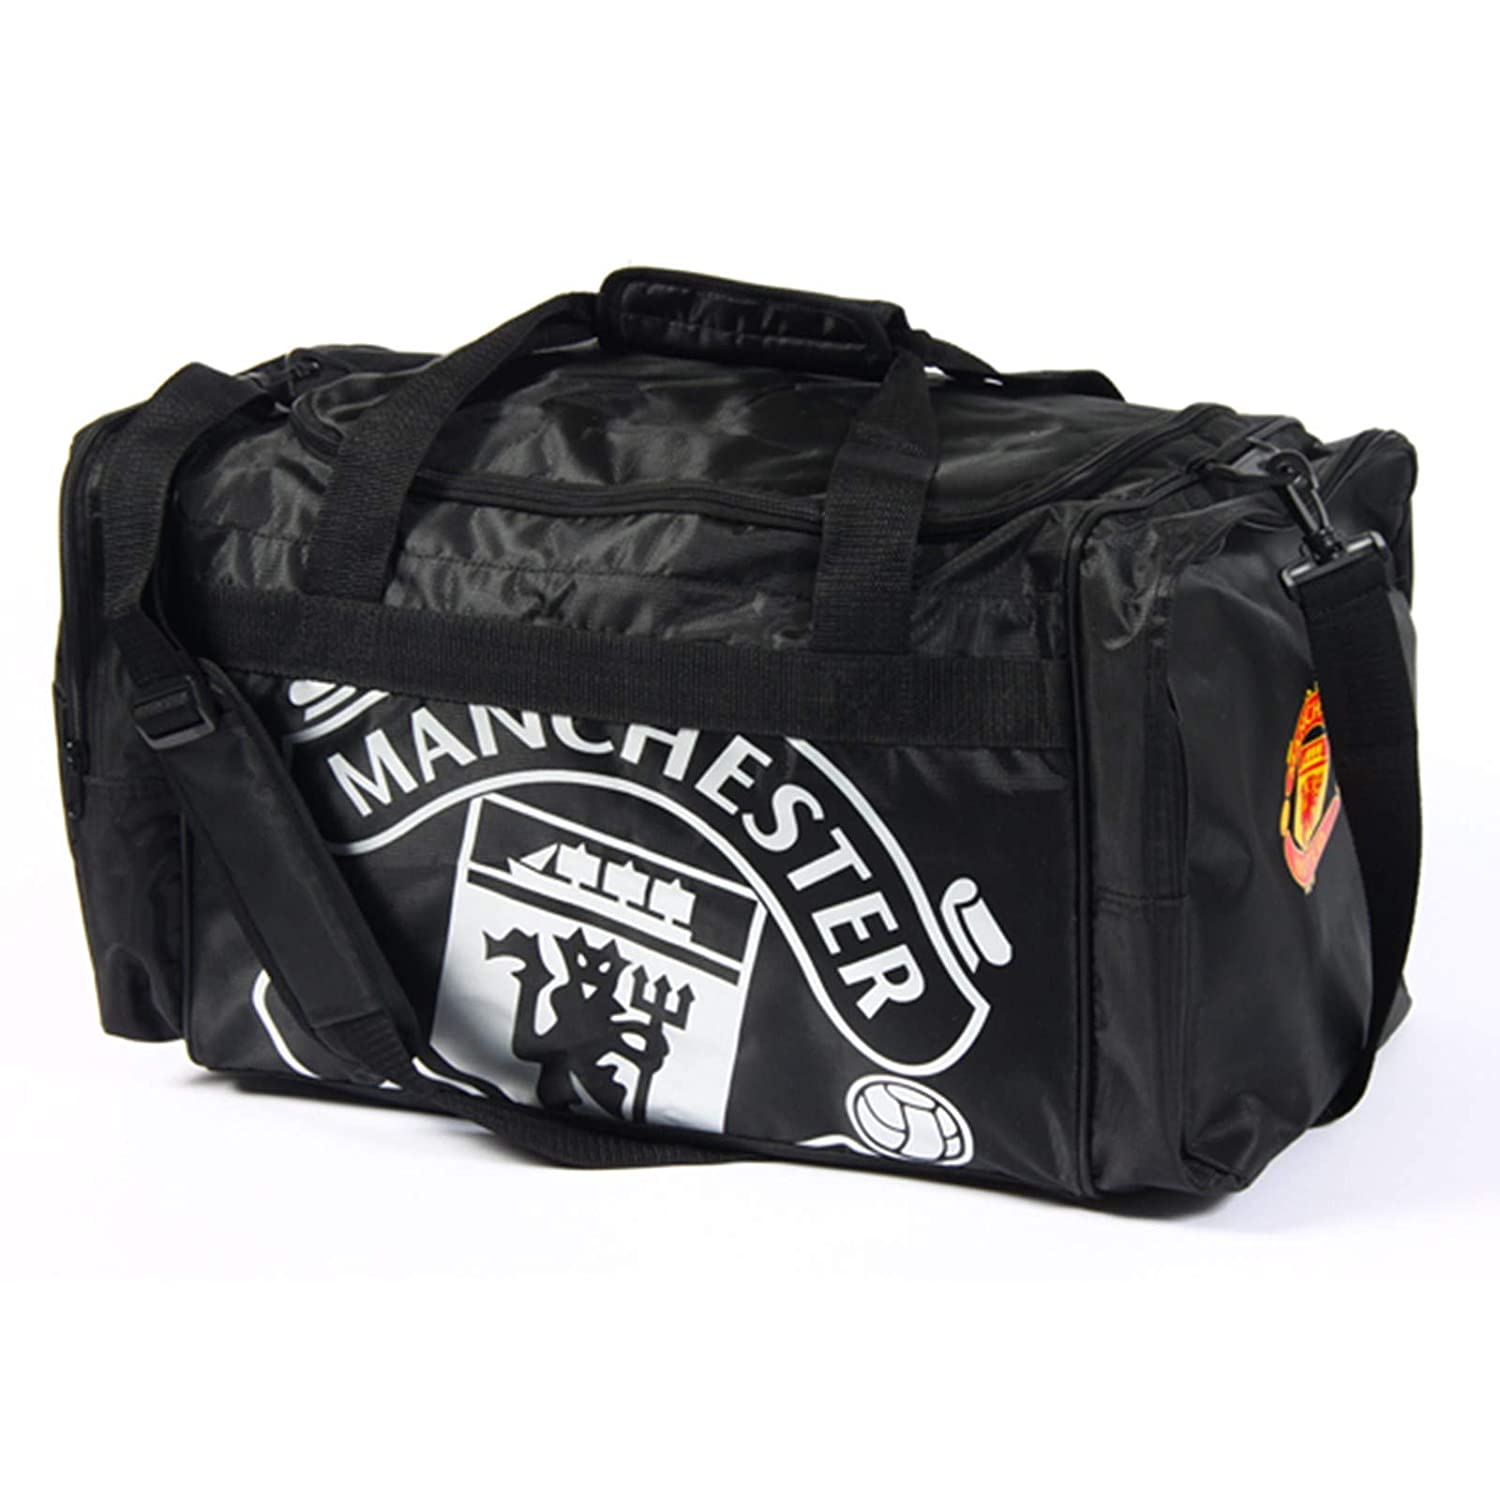 Manchester United Football Club Black And Chrome Official Holdall Gym Bag Team Crest Badge